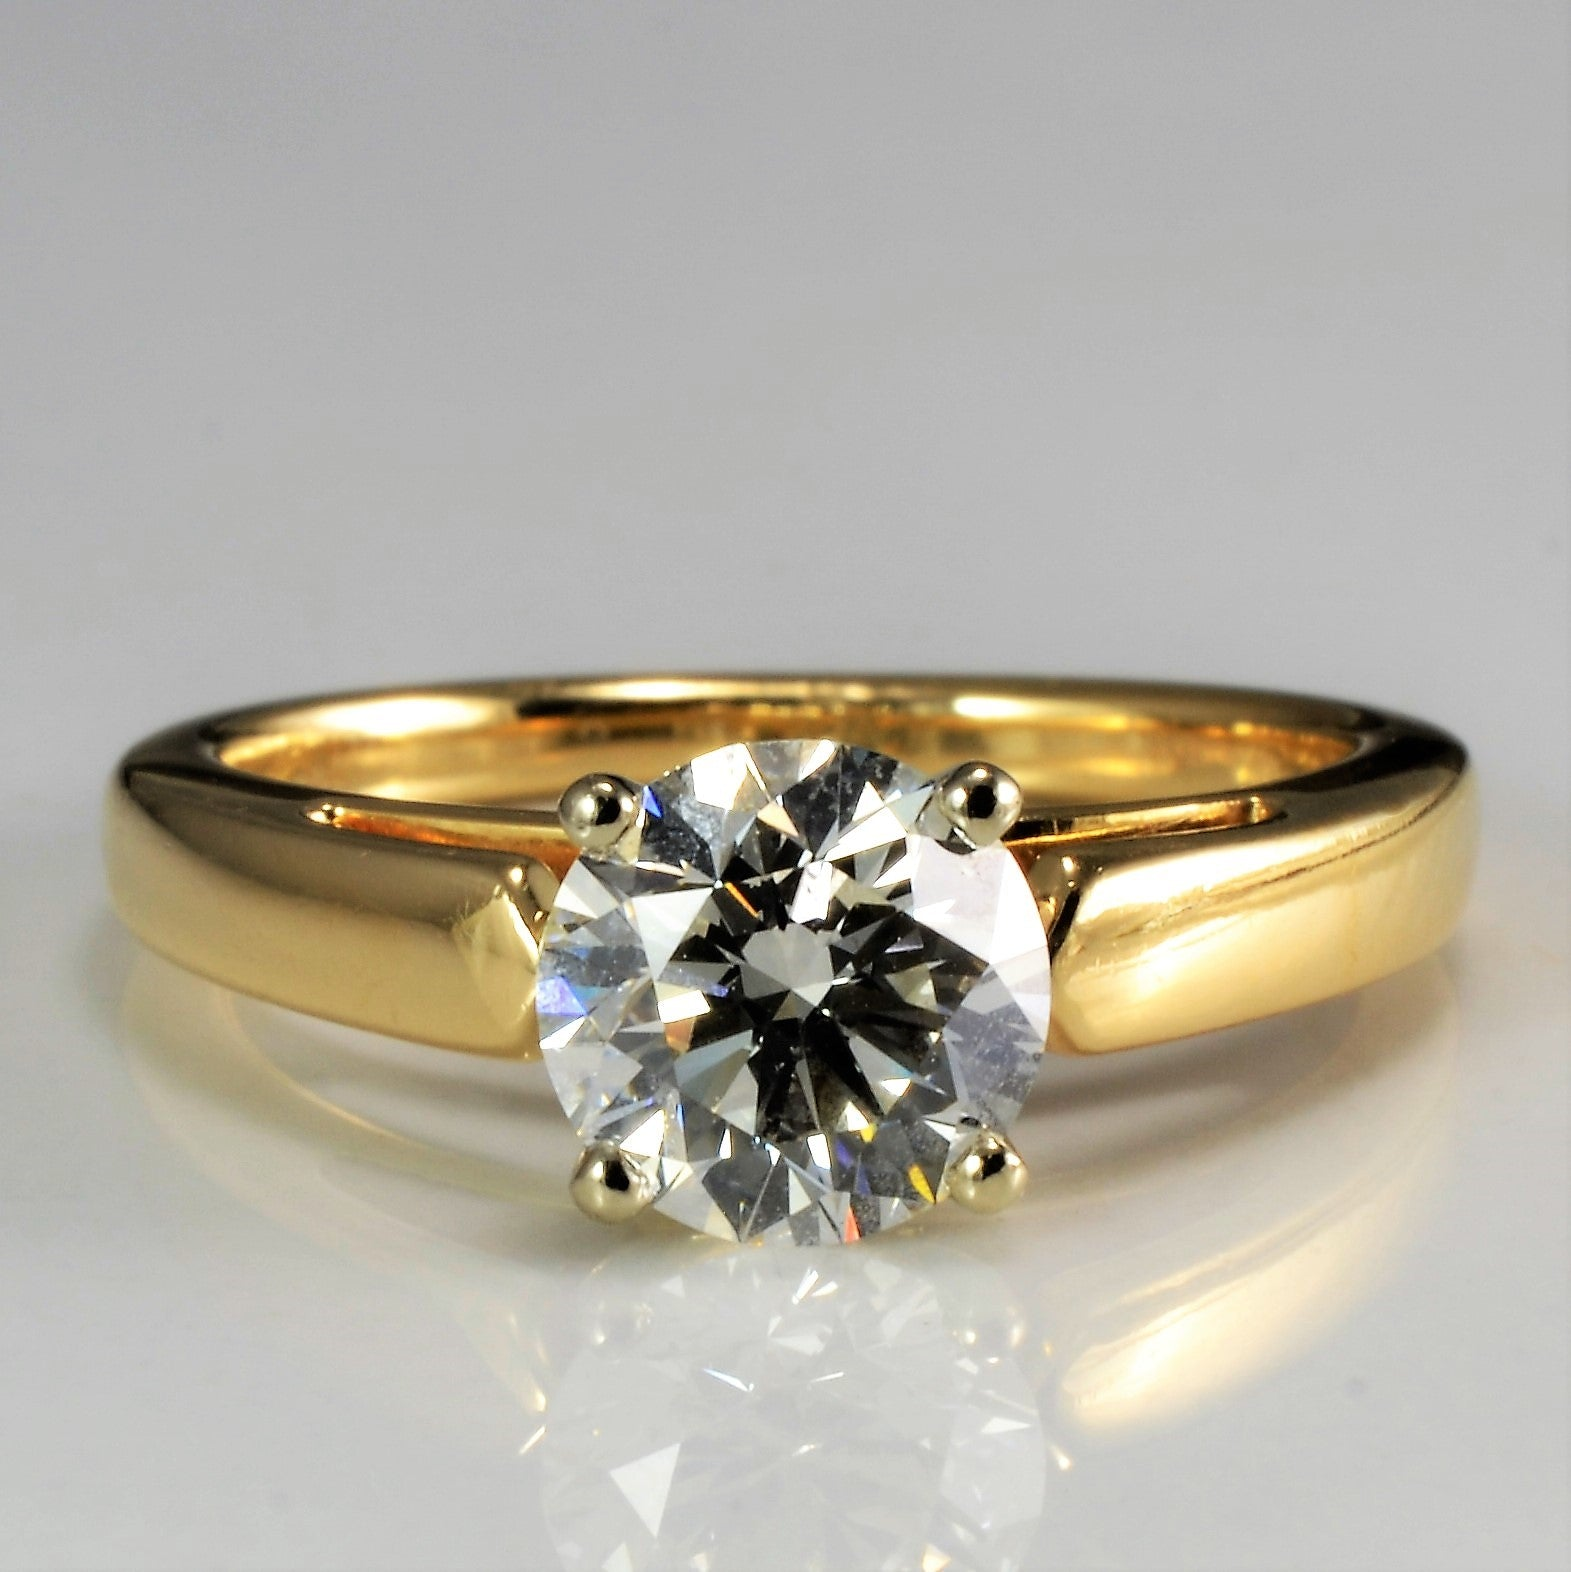 Tapered Solitaire Diamond Engagement Ring | 1.05 ct, SZ 4.5 | VVS2, I |